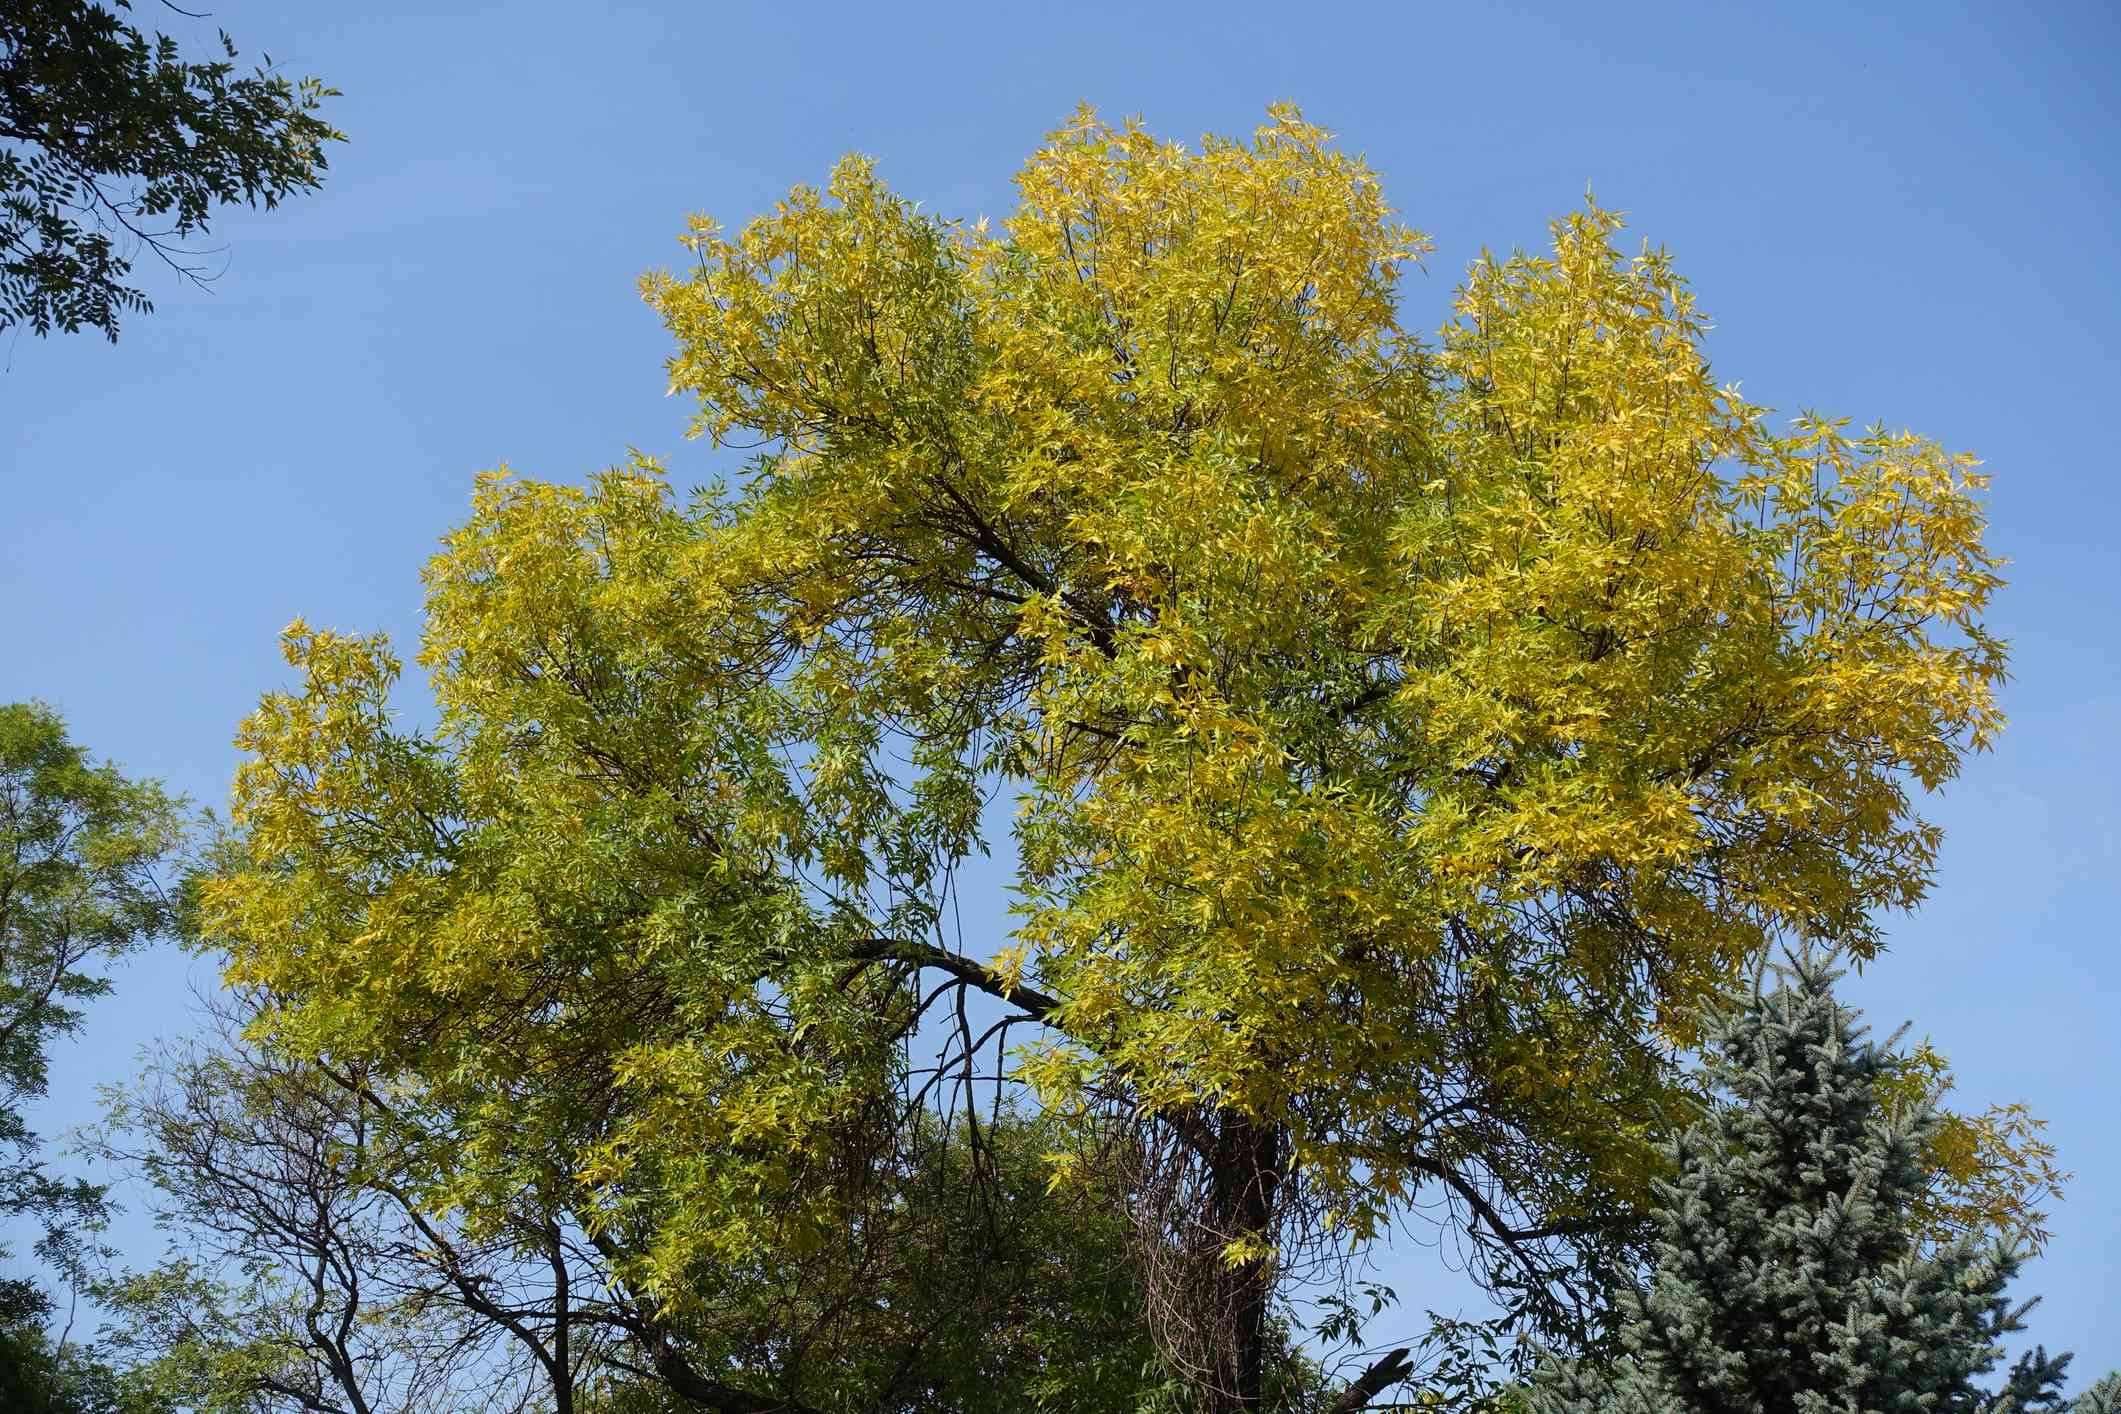 Leaves yellowing on a Green Ash tree.